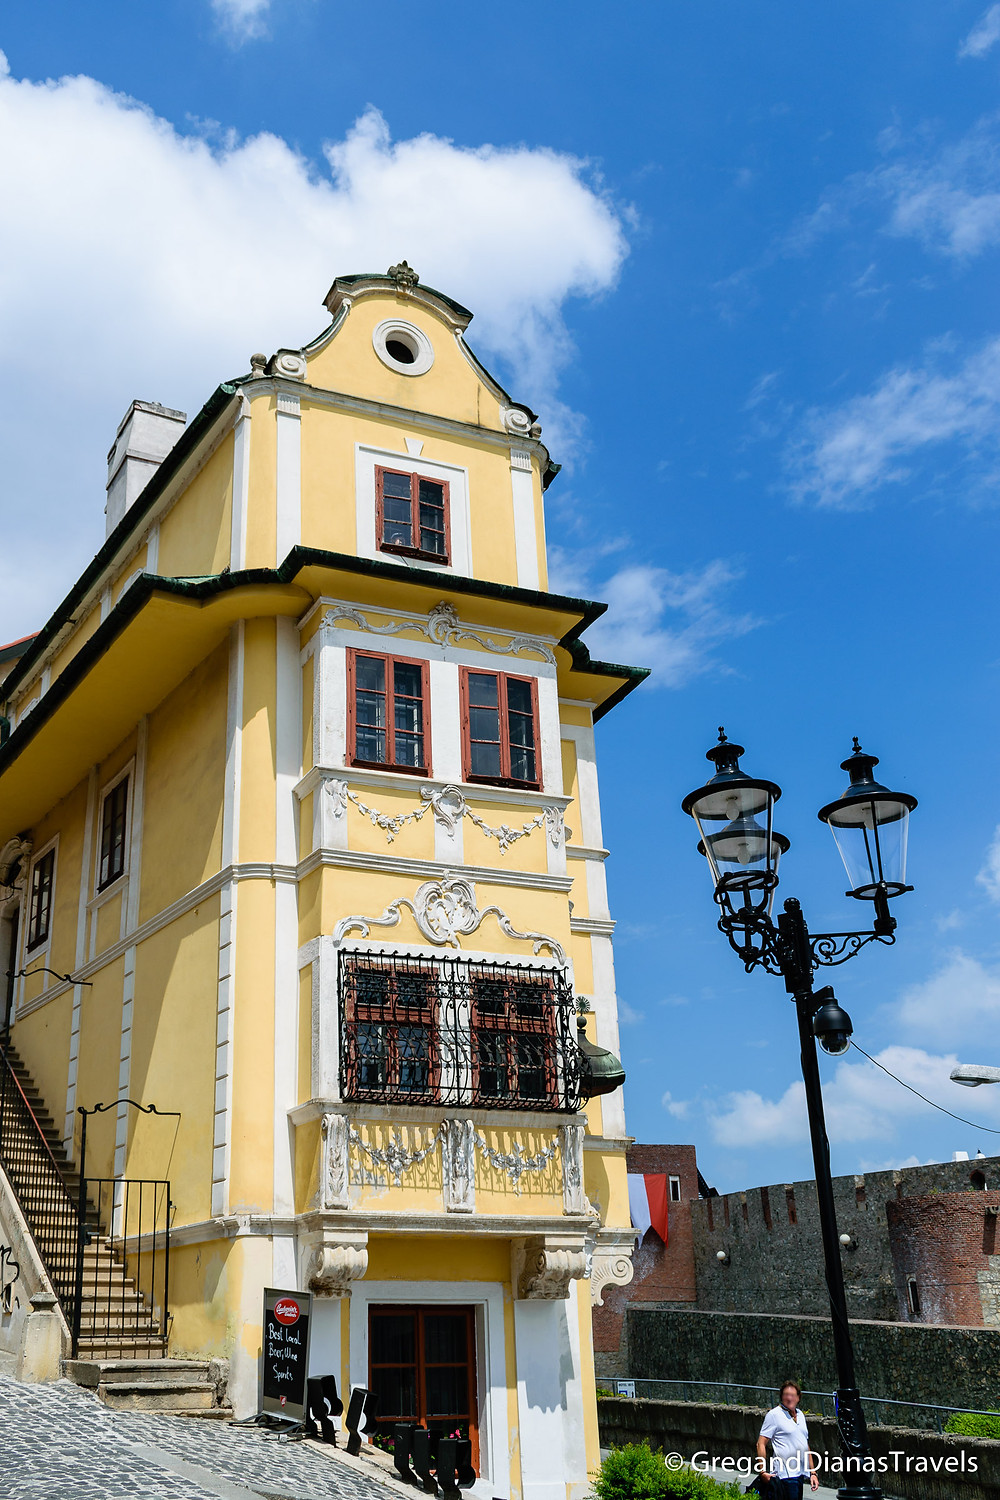 House of the Good Shepherd, also called the Clock Museum, Bratislava Slovakia, Travel blog, Travel photography